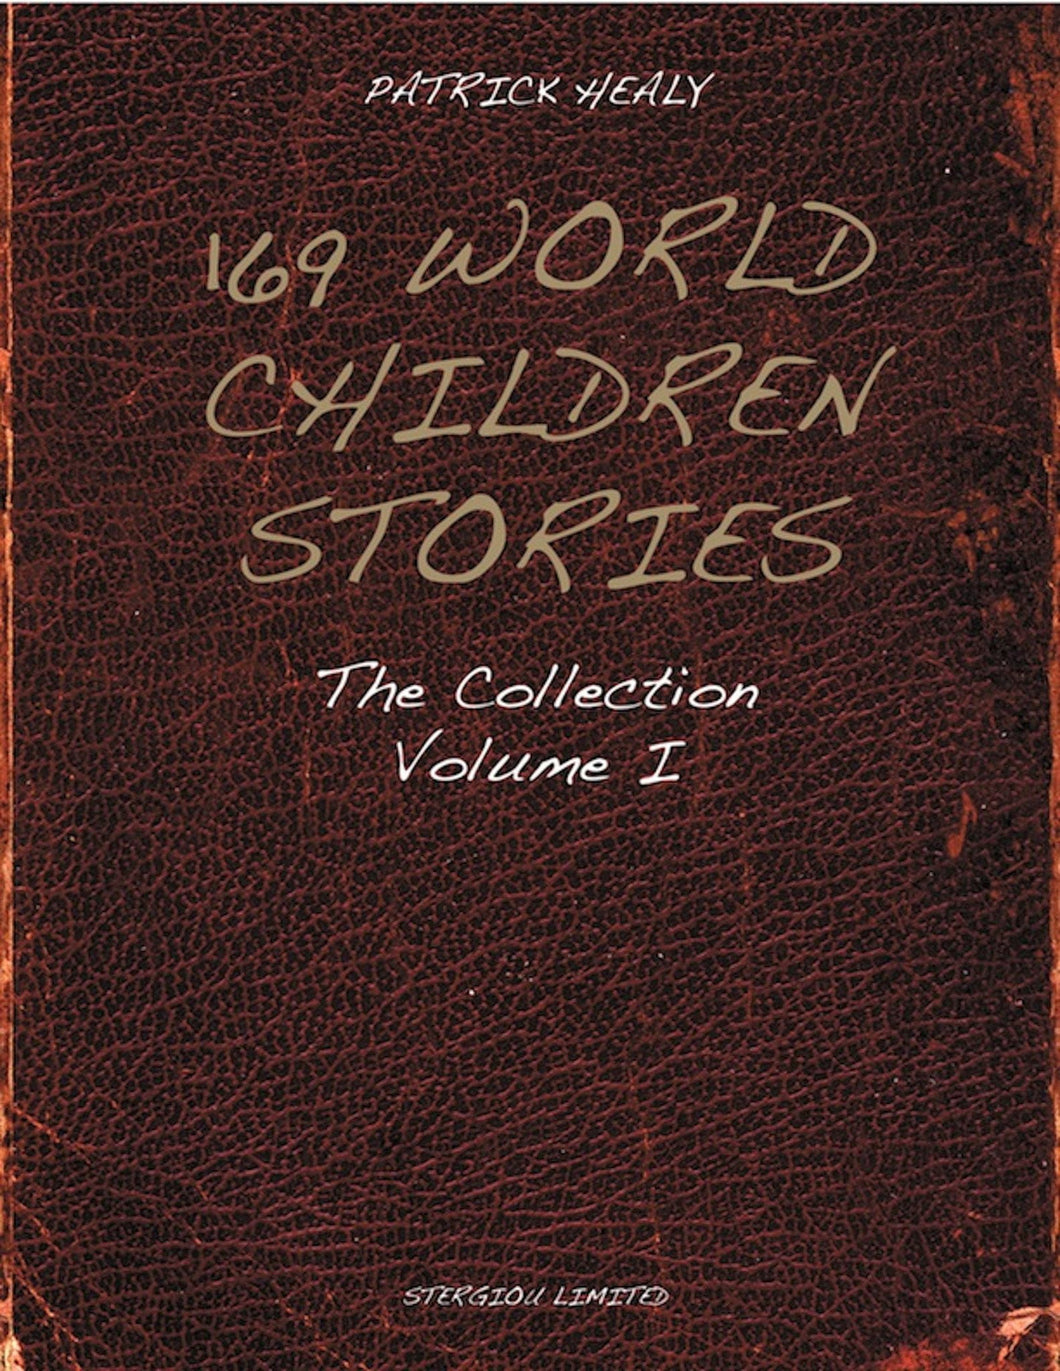 169 World Children Stories - Volume 1